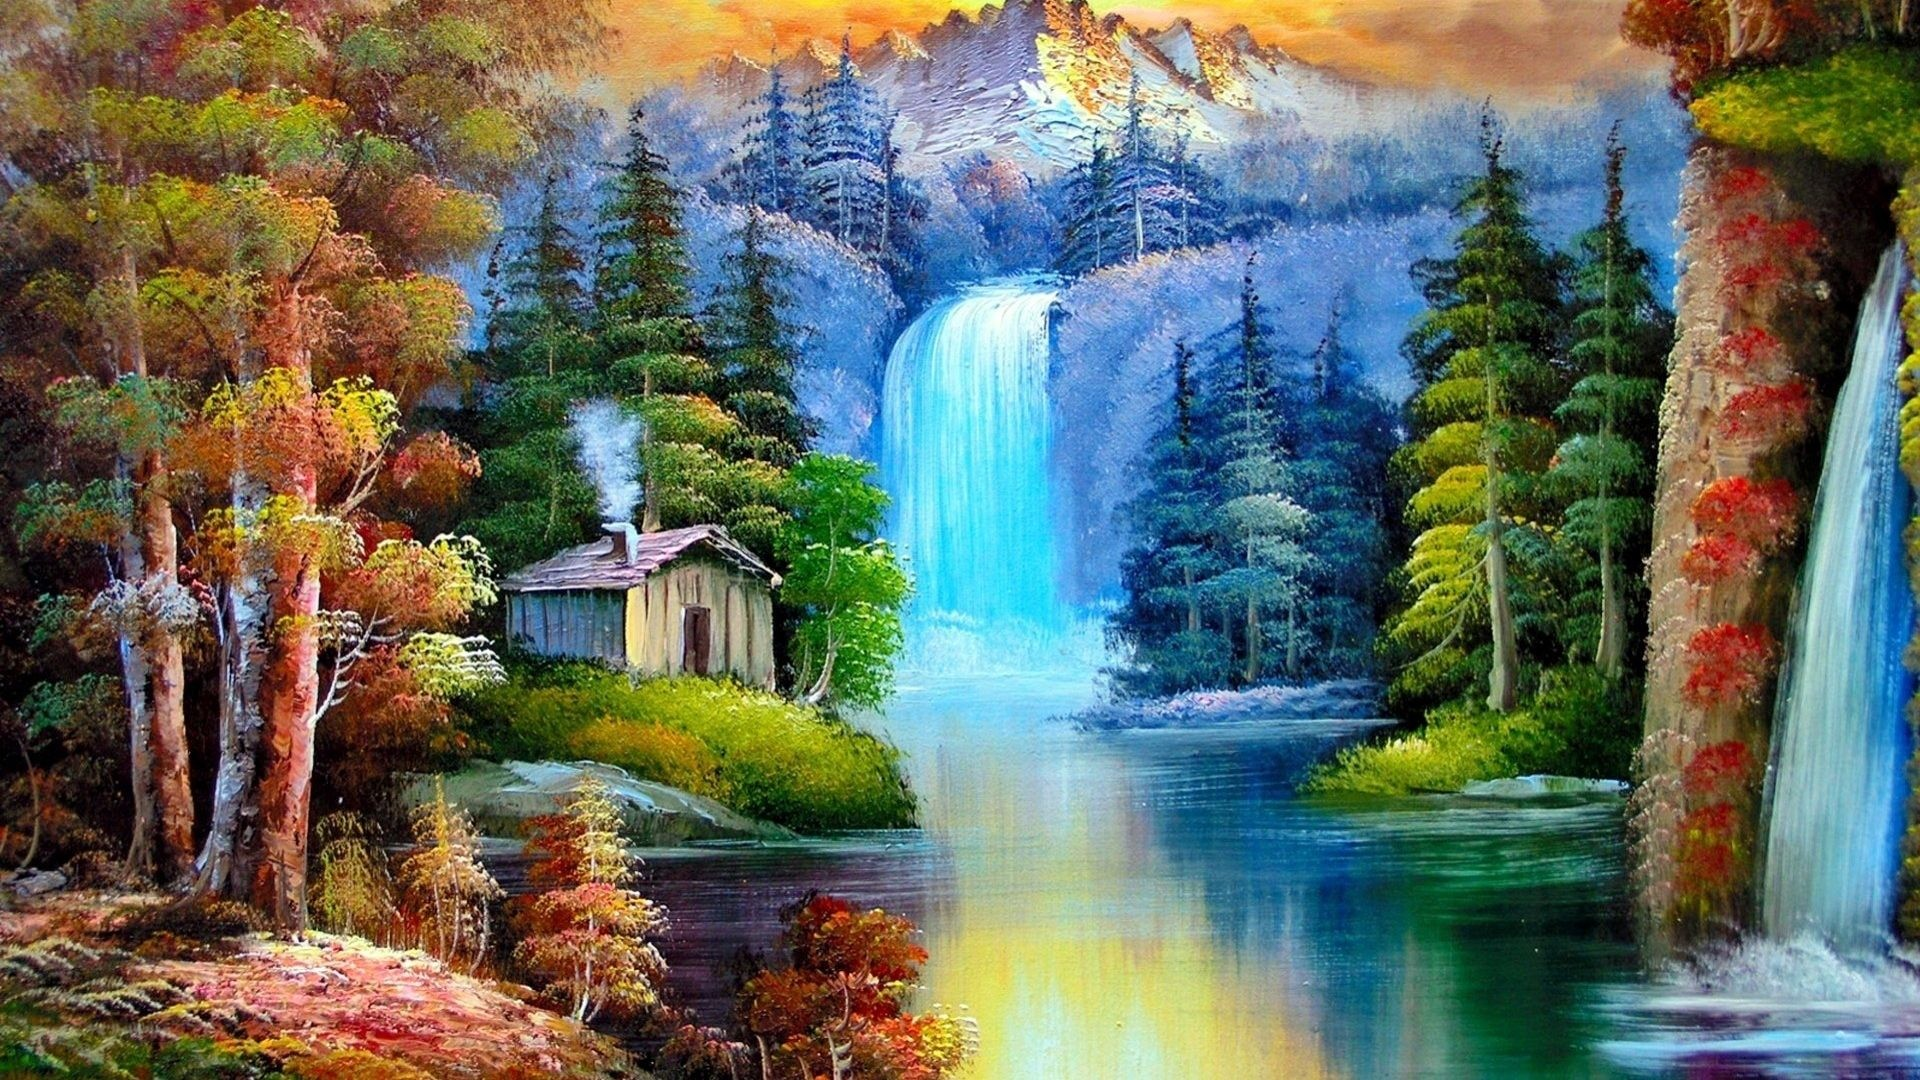 Waterfall desktop wallpaper wallpapertag - Nature wallpaper of waterfall ...